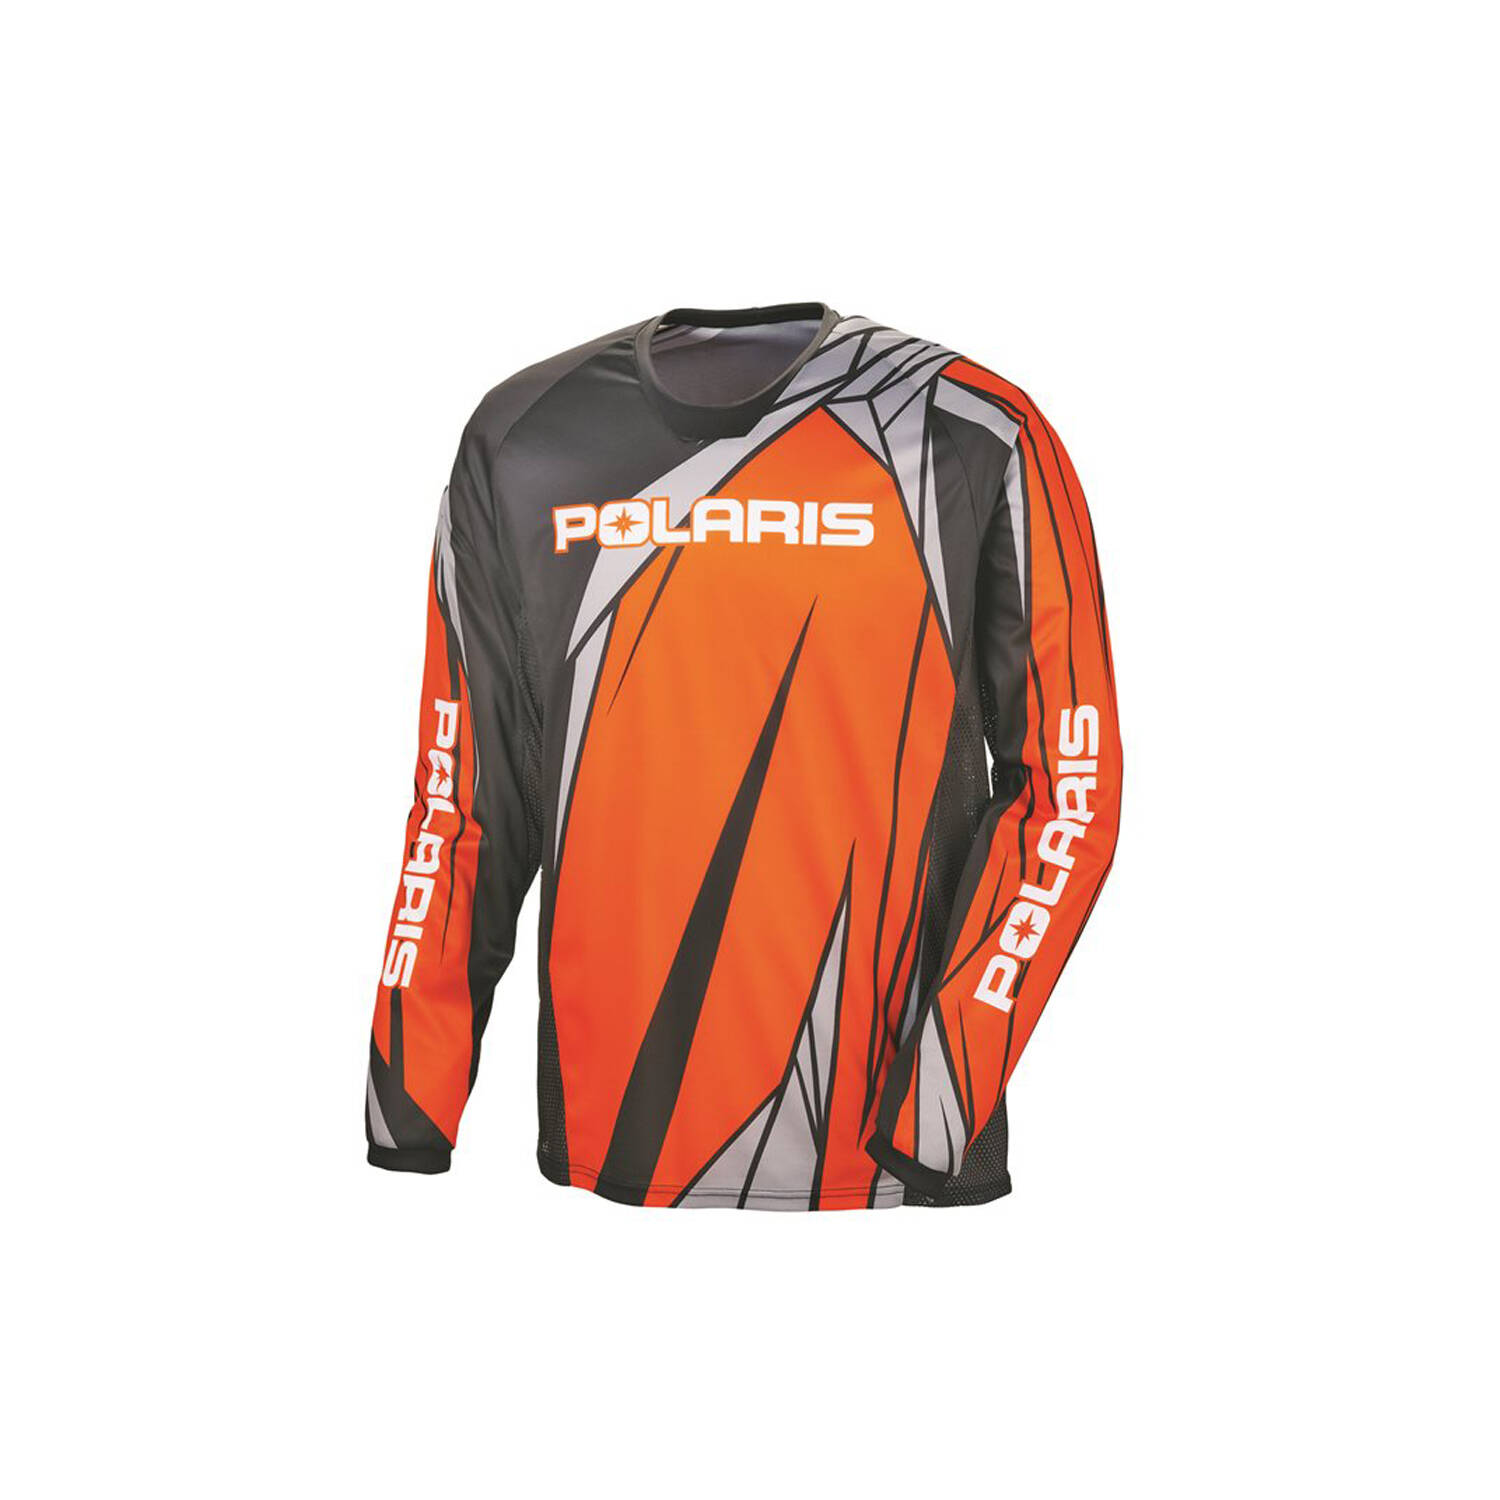 Unisex Long-Sleeve Off-Road Riding Jersey with Mesh Ventilated Panels, Orange